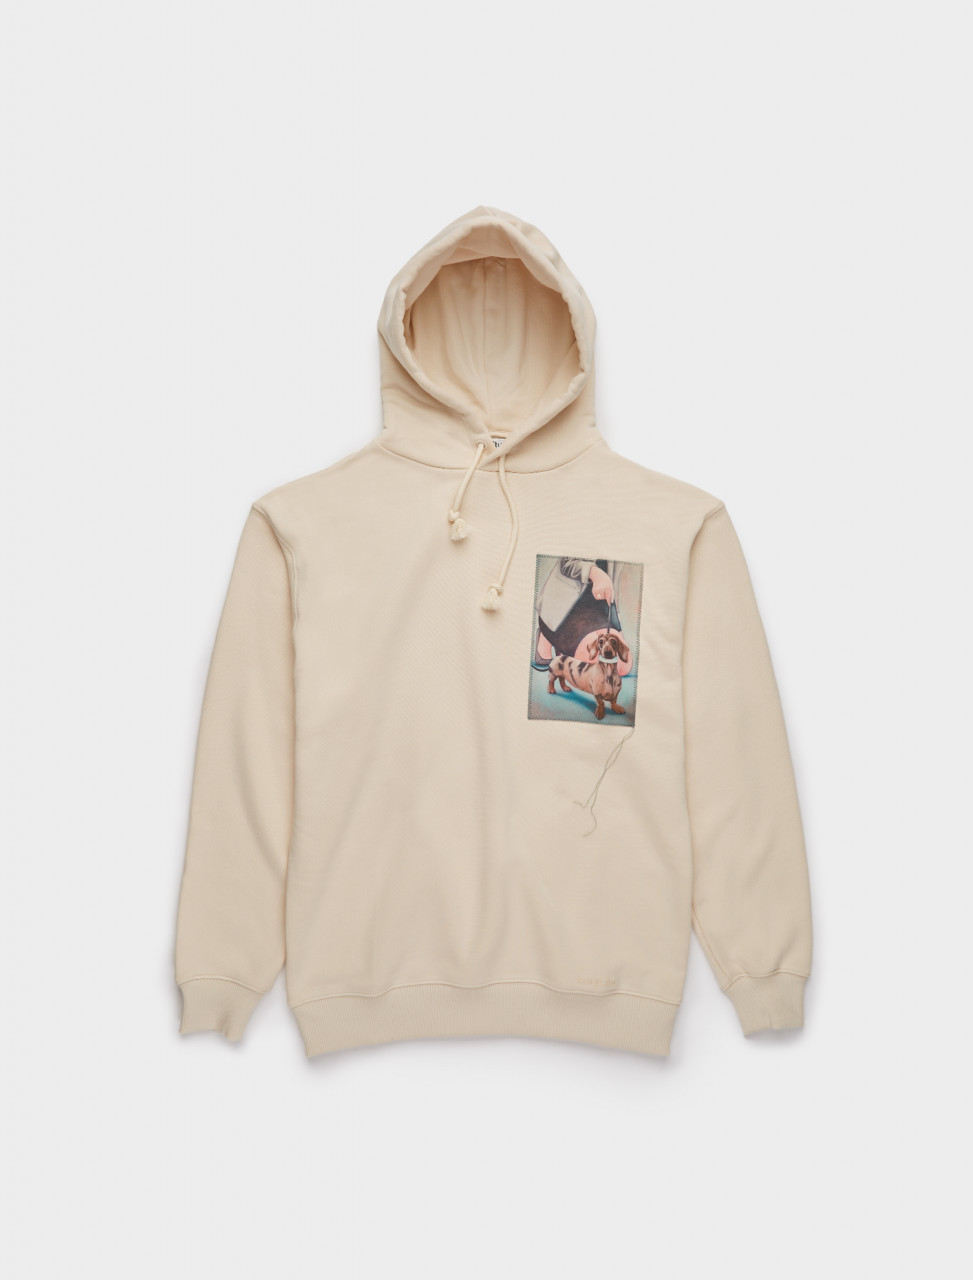 110-AI0066-AEI ACNE STUDIOS Dog-Patch Hooded Sweatshirt in Warm White